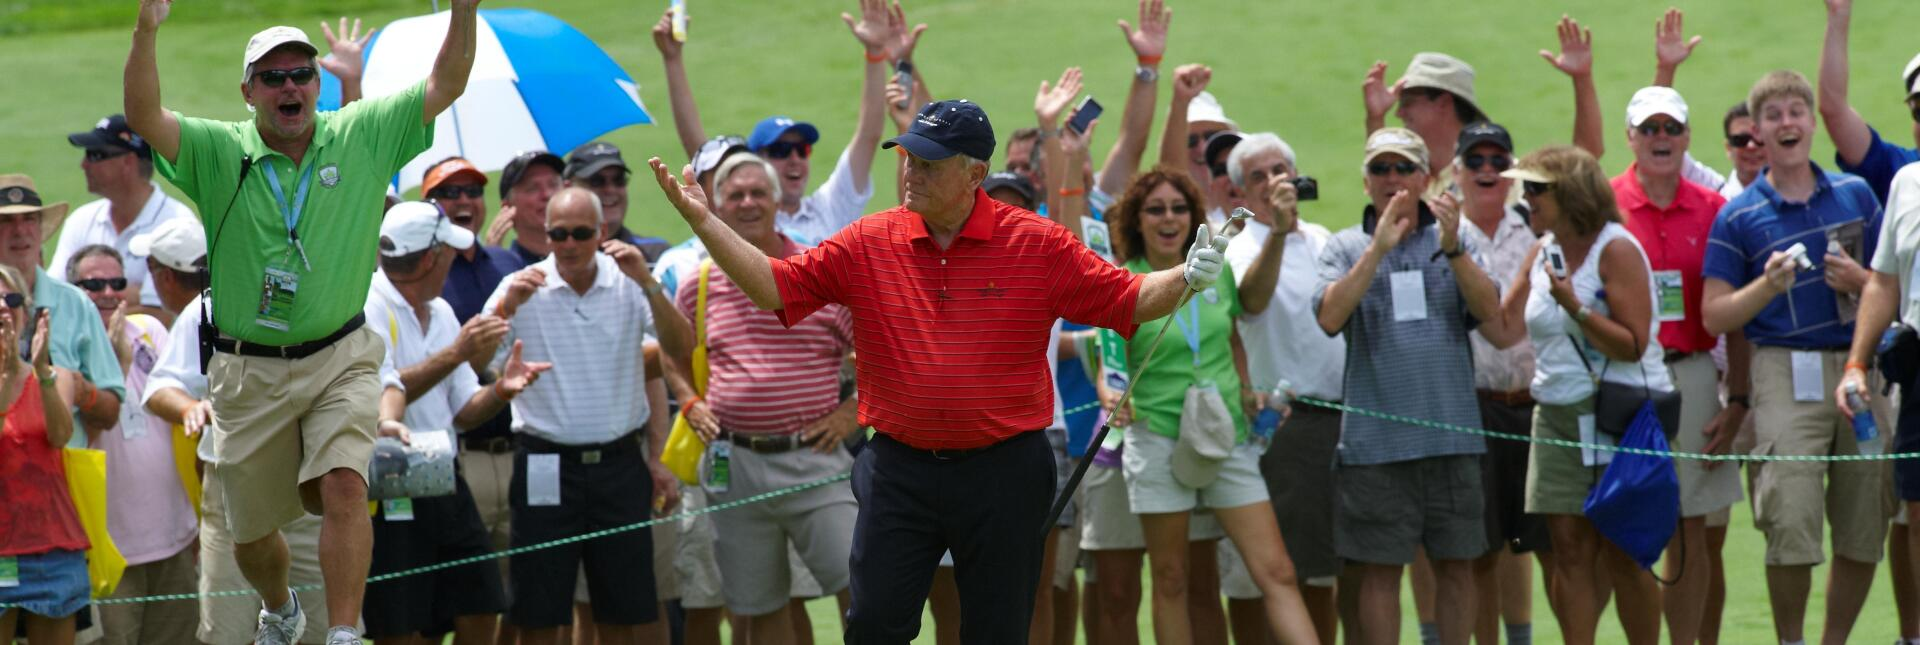 Jack Nicklaus reacts to making a 100 footer at Harbor Shores